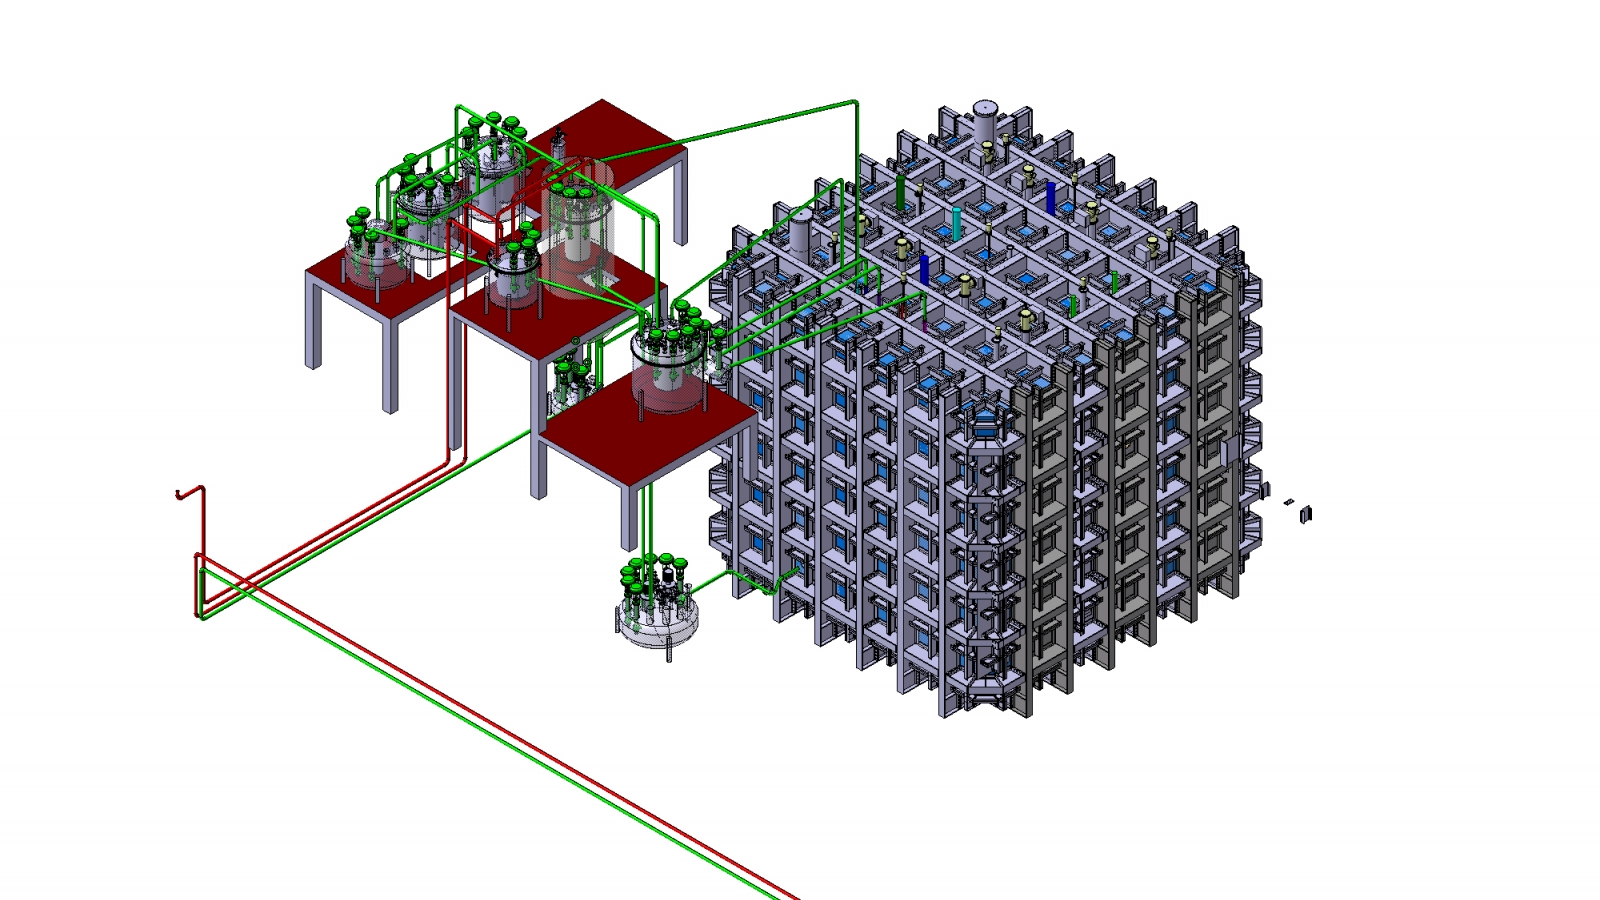 Rendering of the cryostat housing the dual-phase DUNE prototype detector and its cryogenics system. Image Courtesy of CERN.